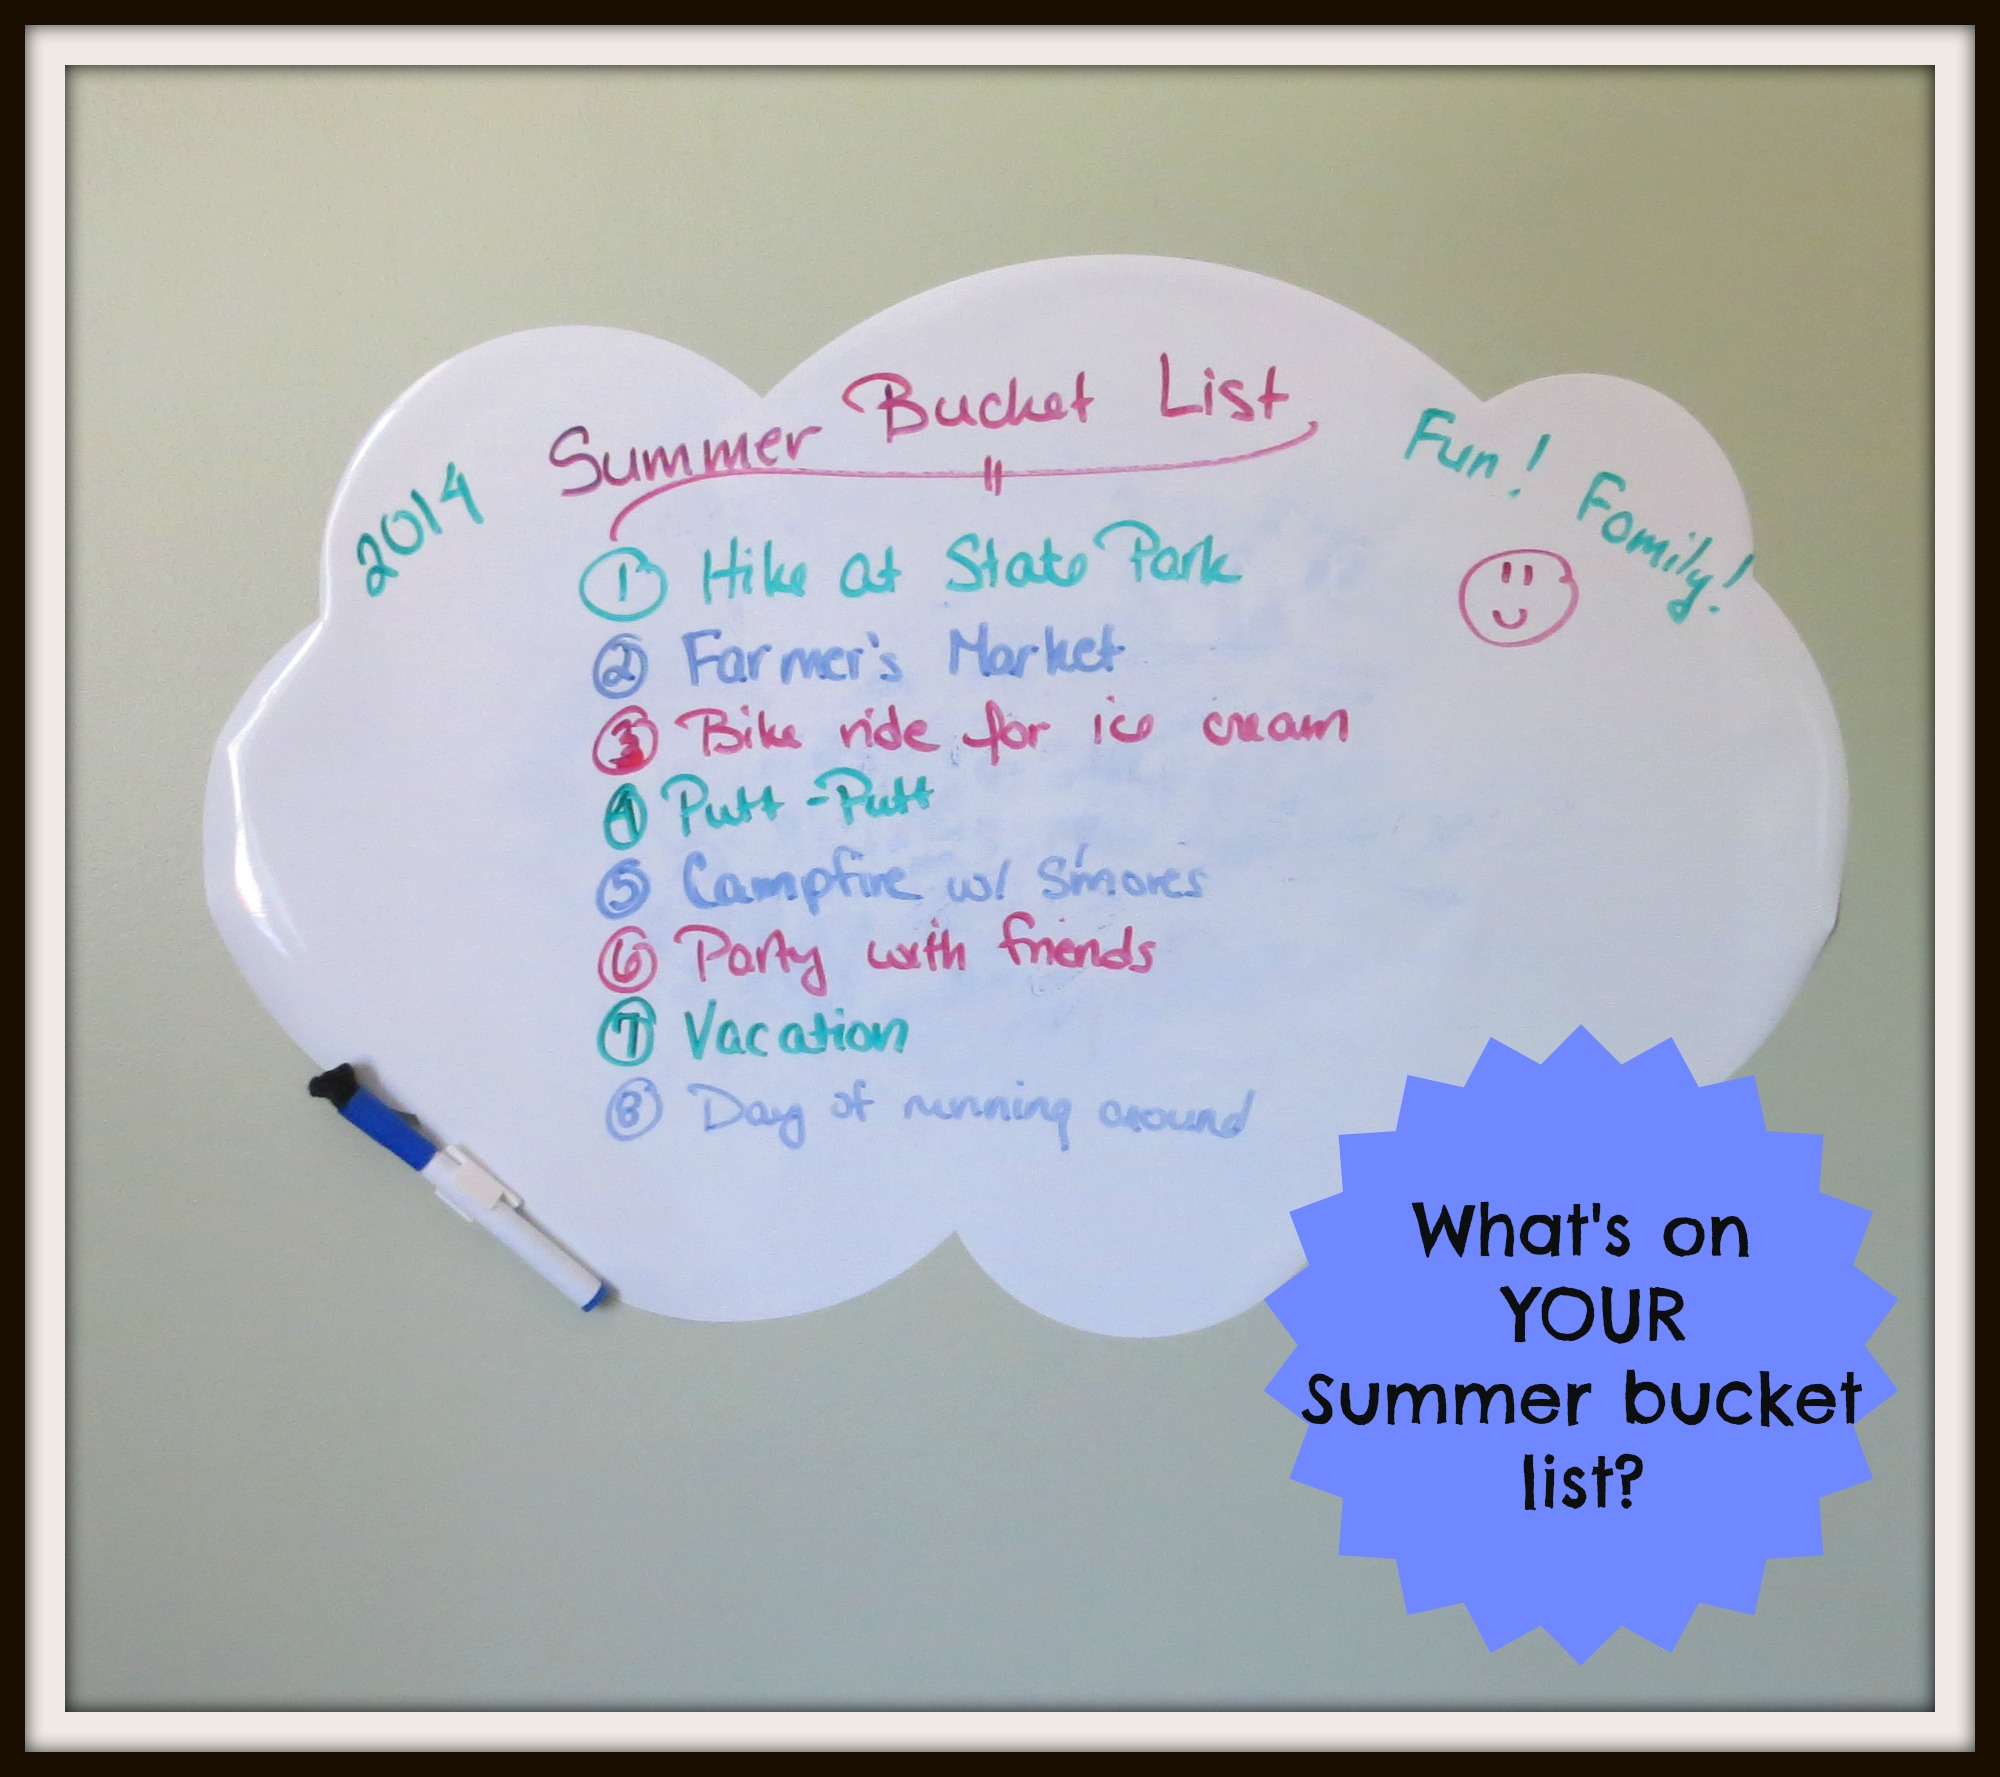 How will YOU spend YOUR summer?